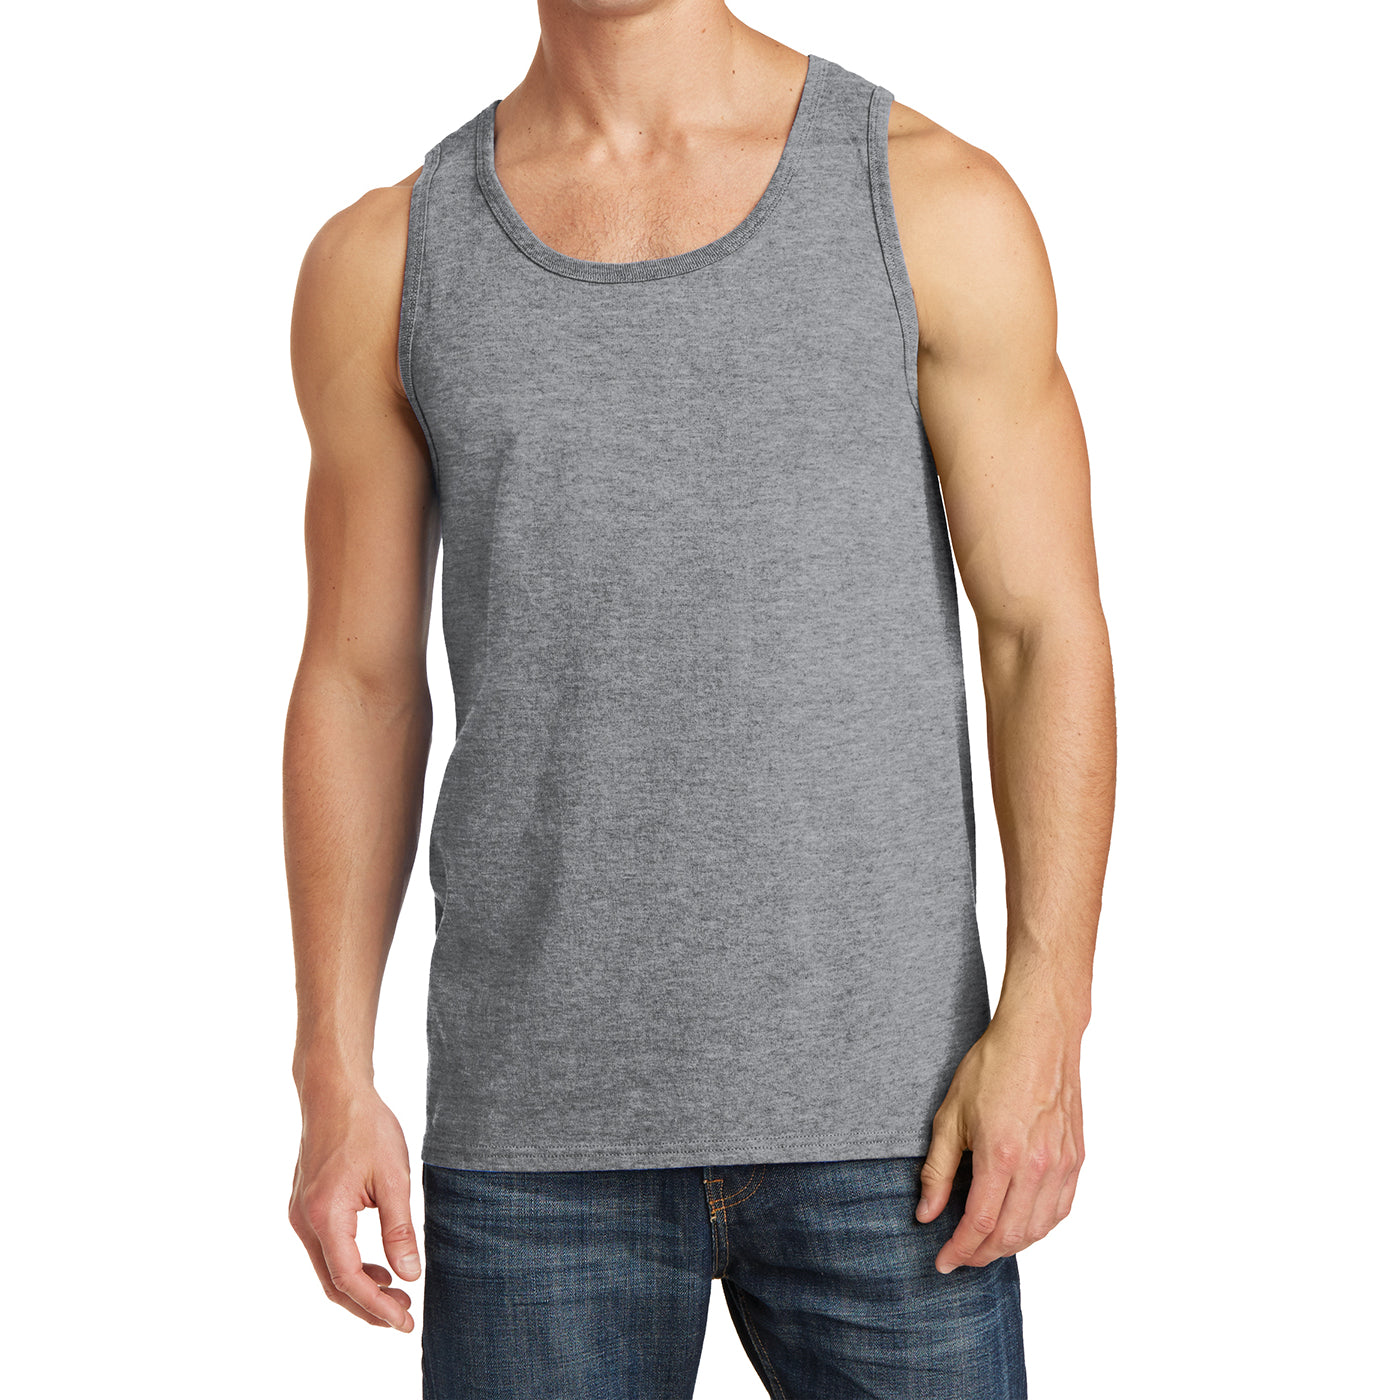 Men's Core Cotton Tank Top - Athletic Heather - Front